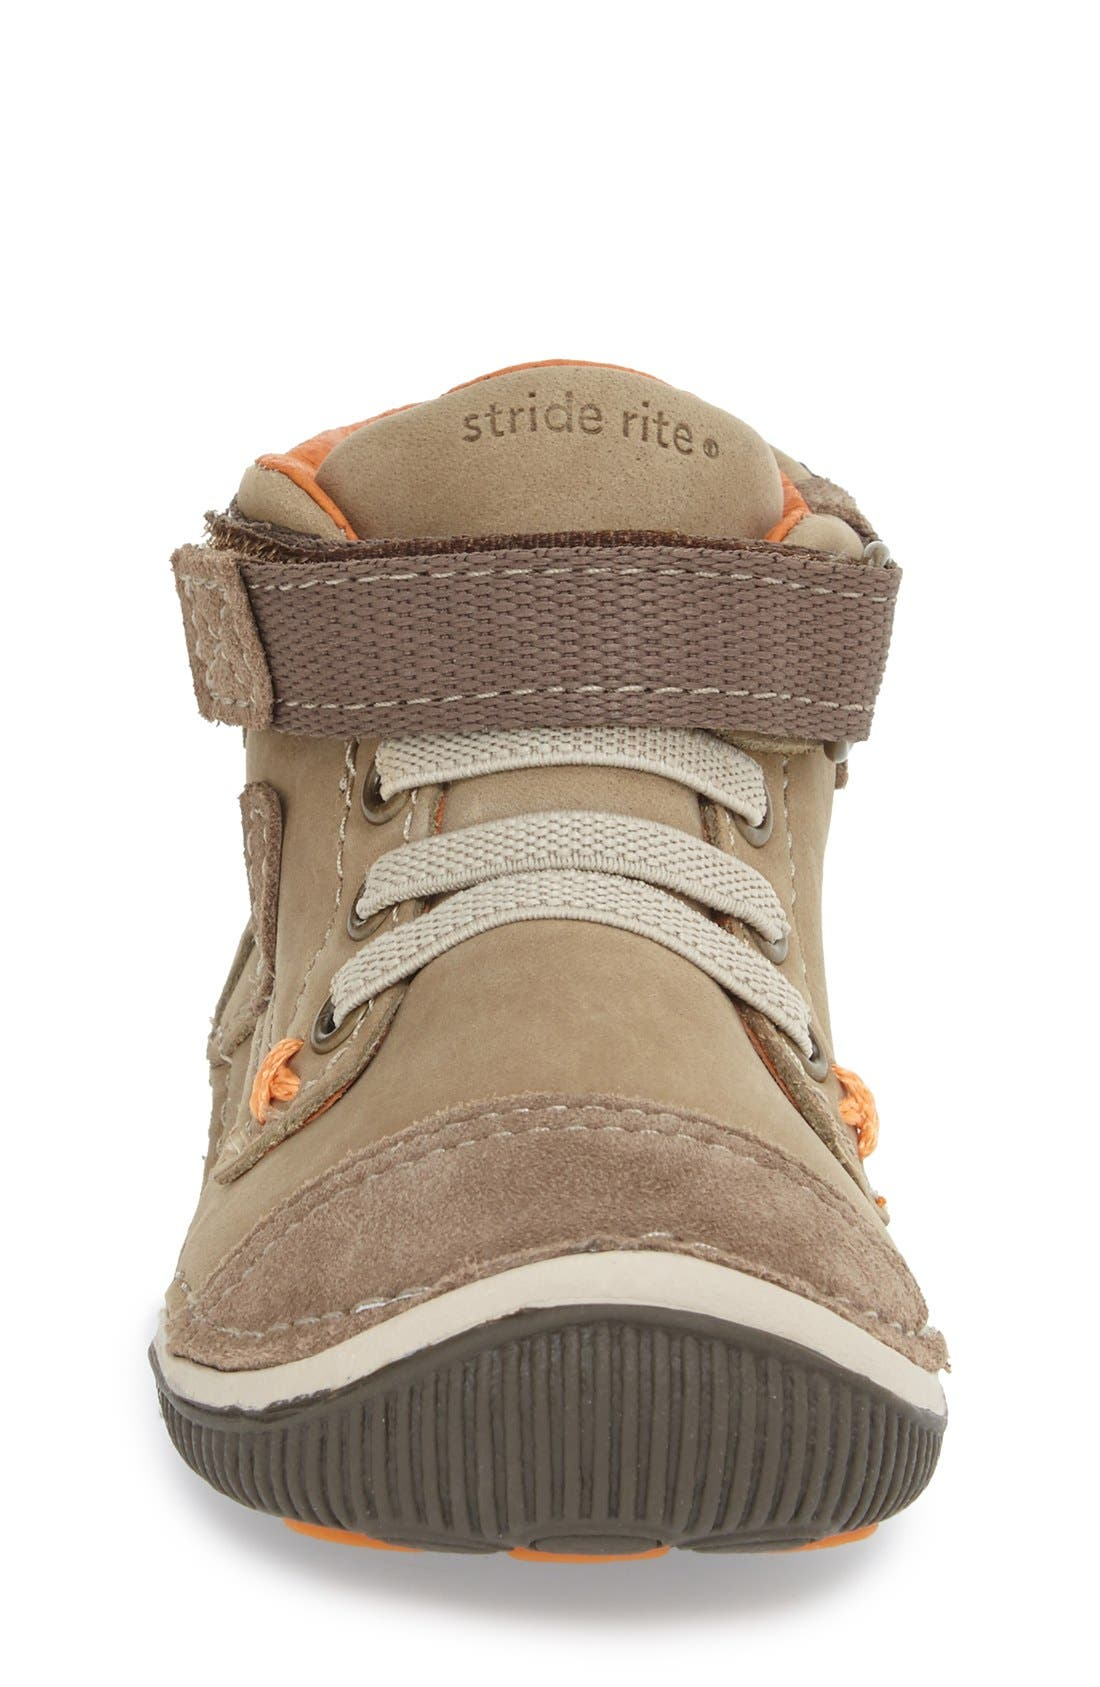 'Garrett' High Top Bootie Sneaker,                             Alternate thumbnail 3, color,                             Brown